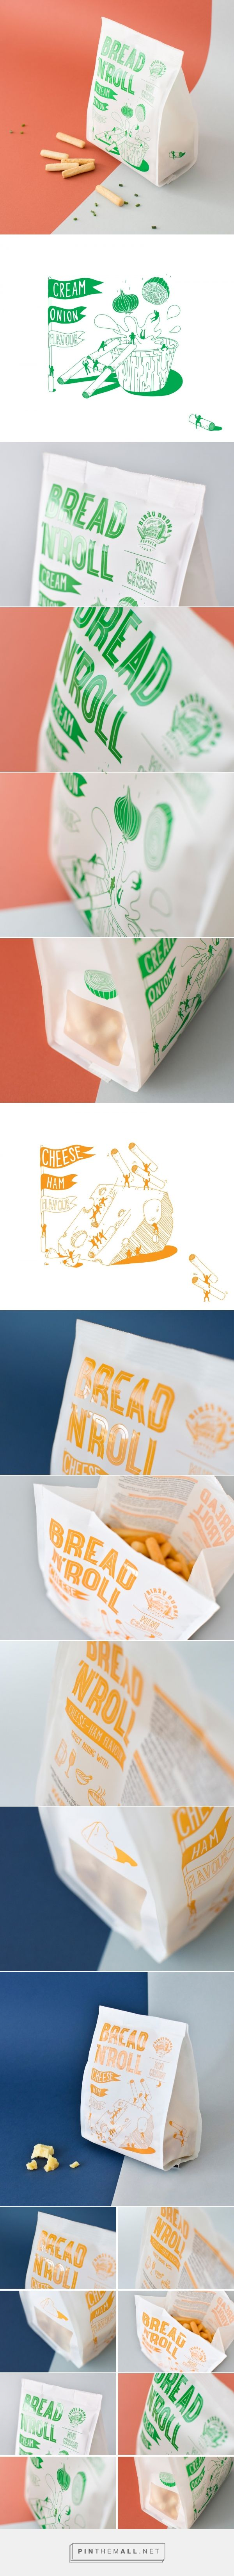 Bread'n'Roll - Packaging of the World - Creative Package Design Gallery - http://www.packagingoftheworld.com/2016/11/breadnroll.html